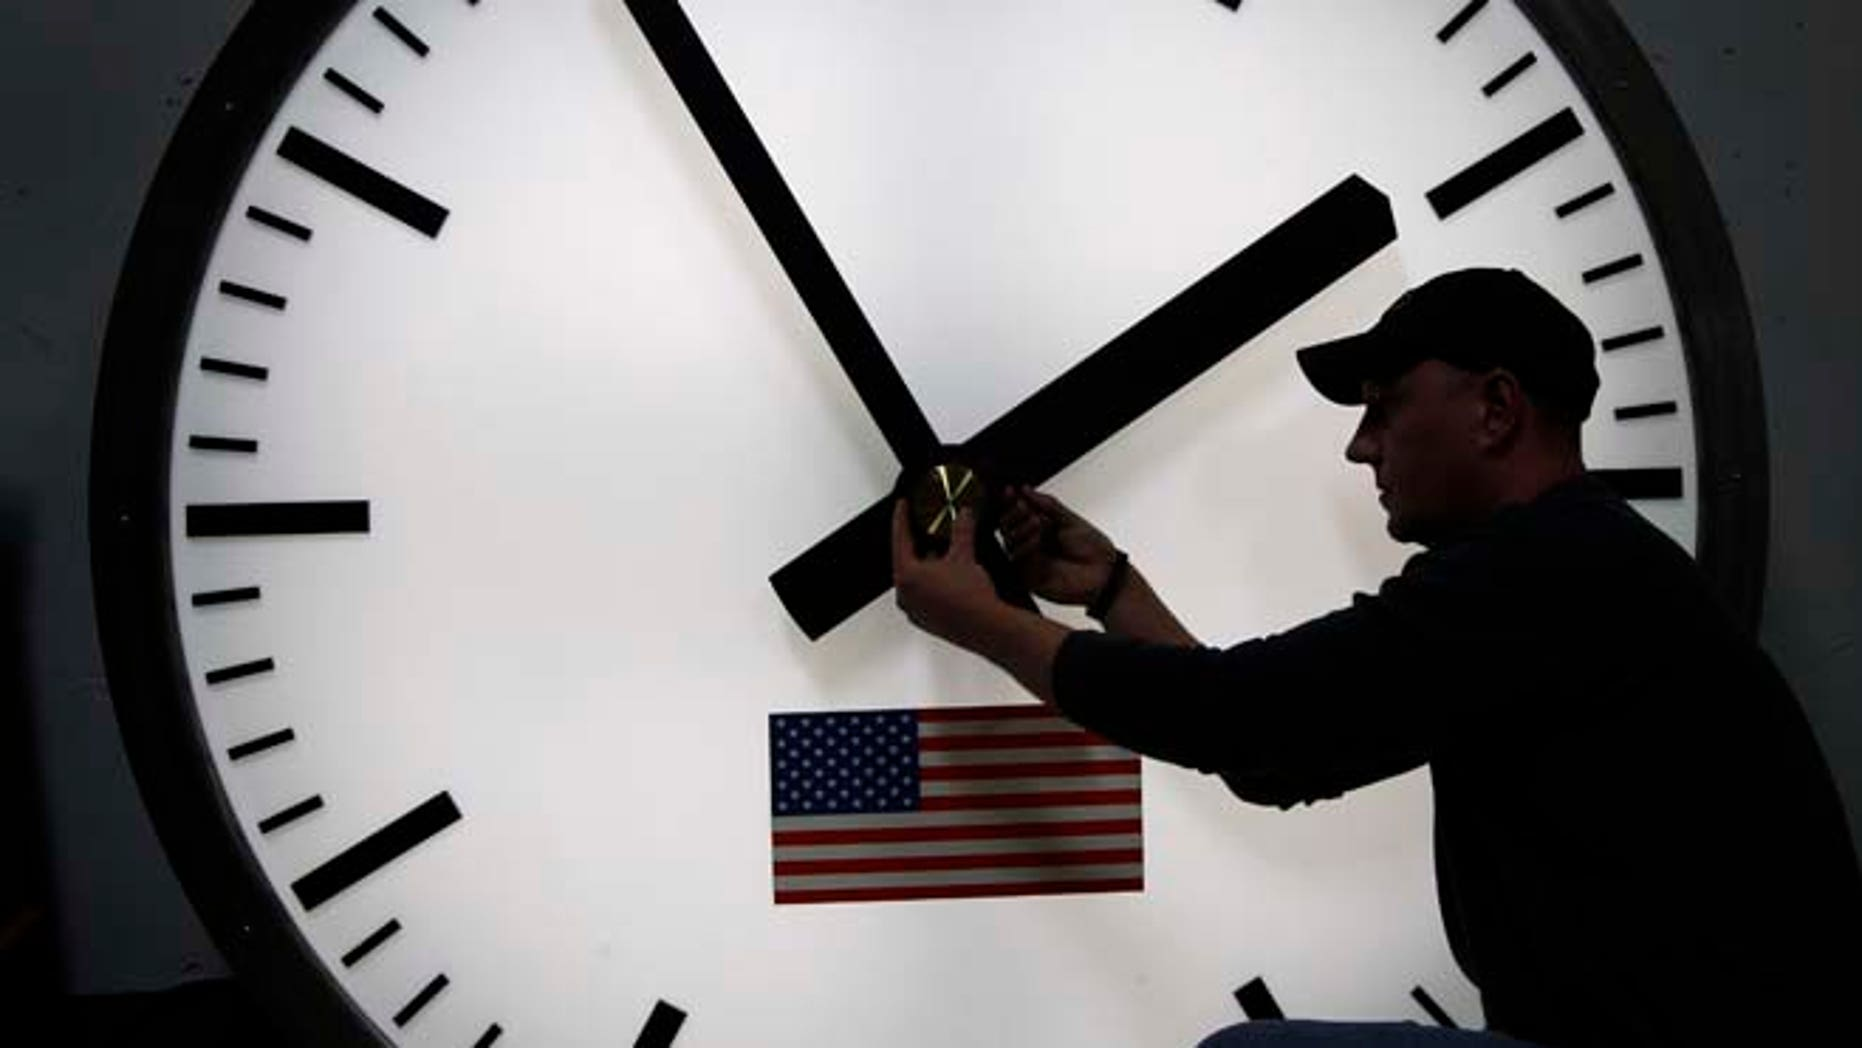 A worker adjusts the hands on a stainless steel tower clock in Medfield, Mass., in this March 7, 2014 file photo.